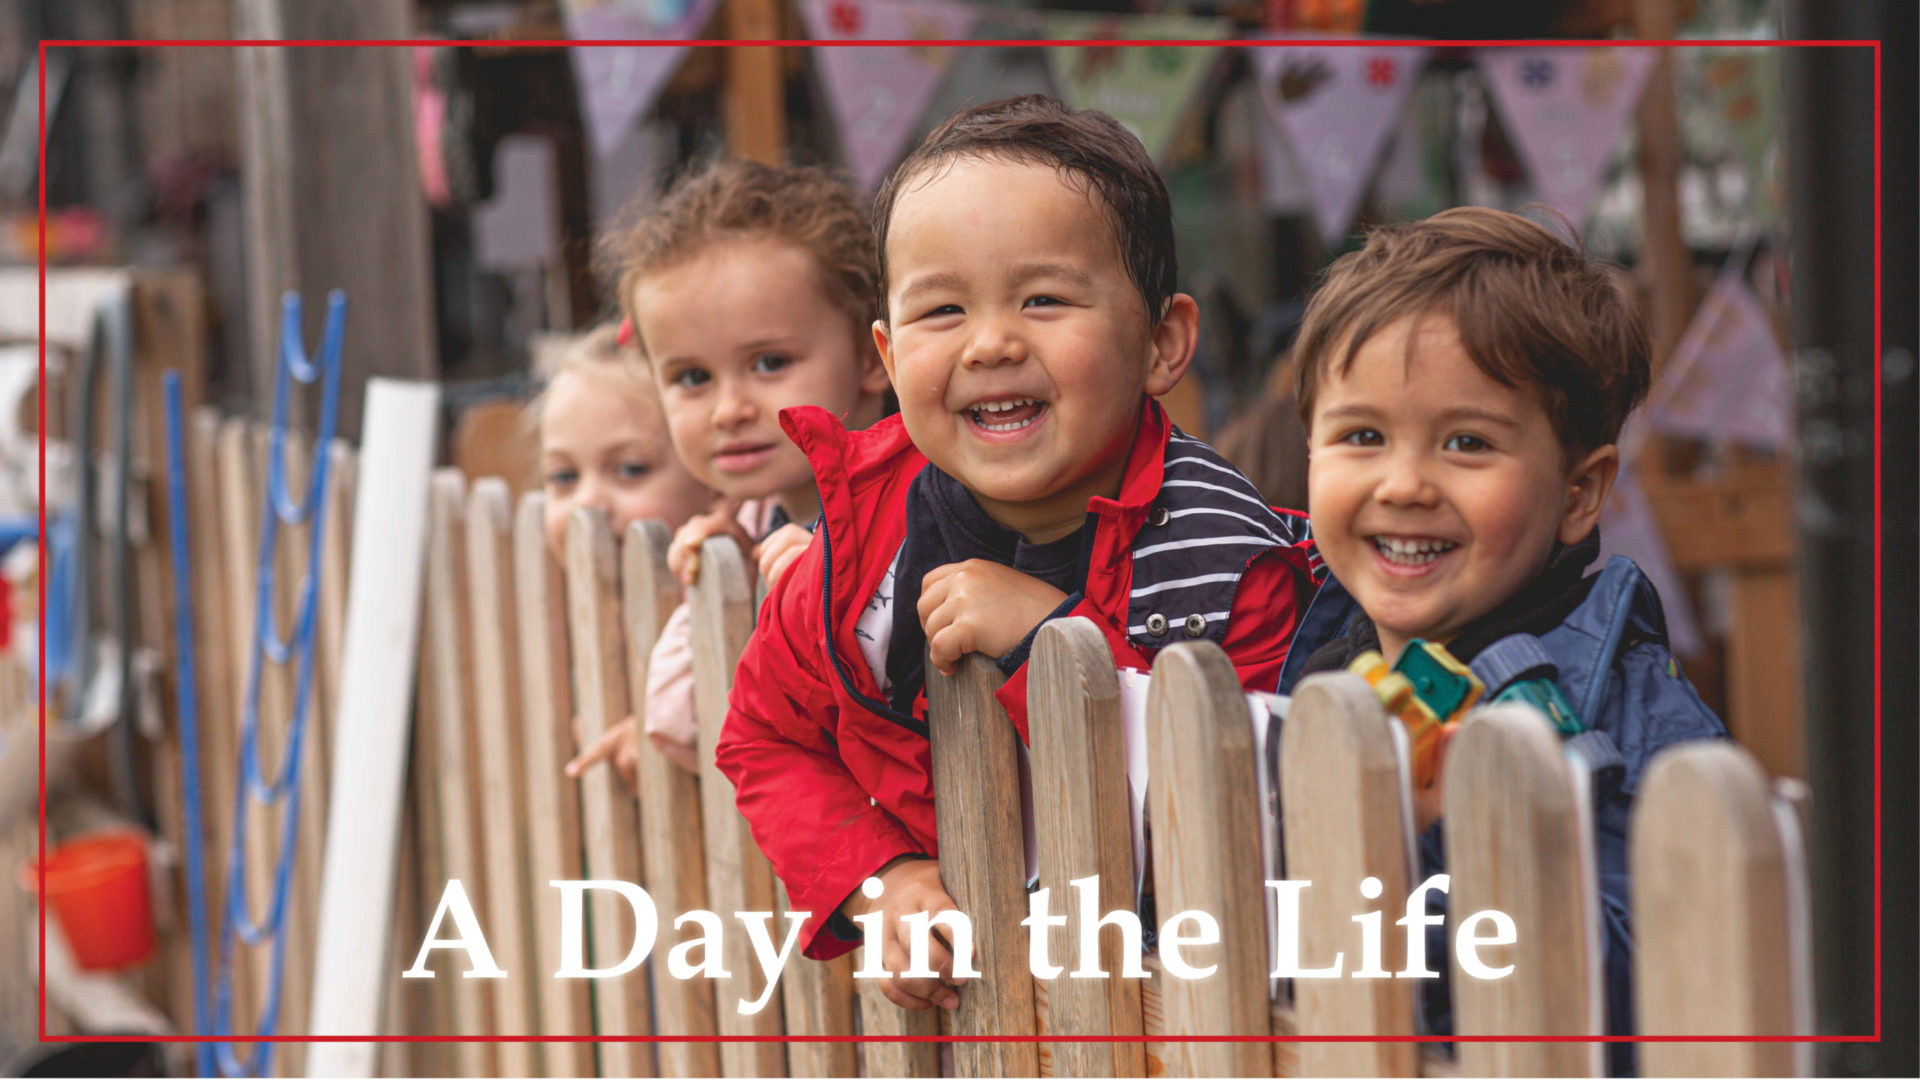 New Hall Nursery: A Day in the Life (ages 1-3)